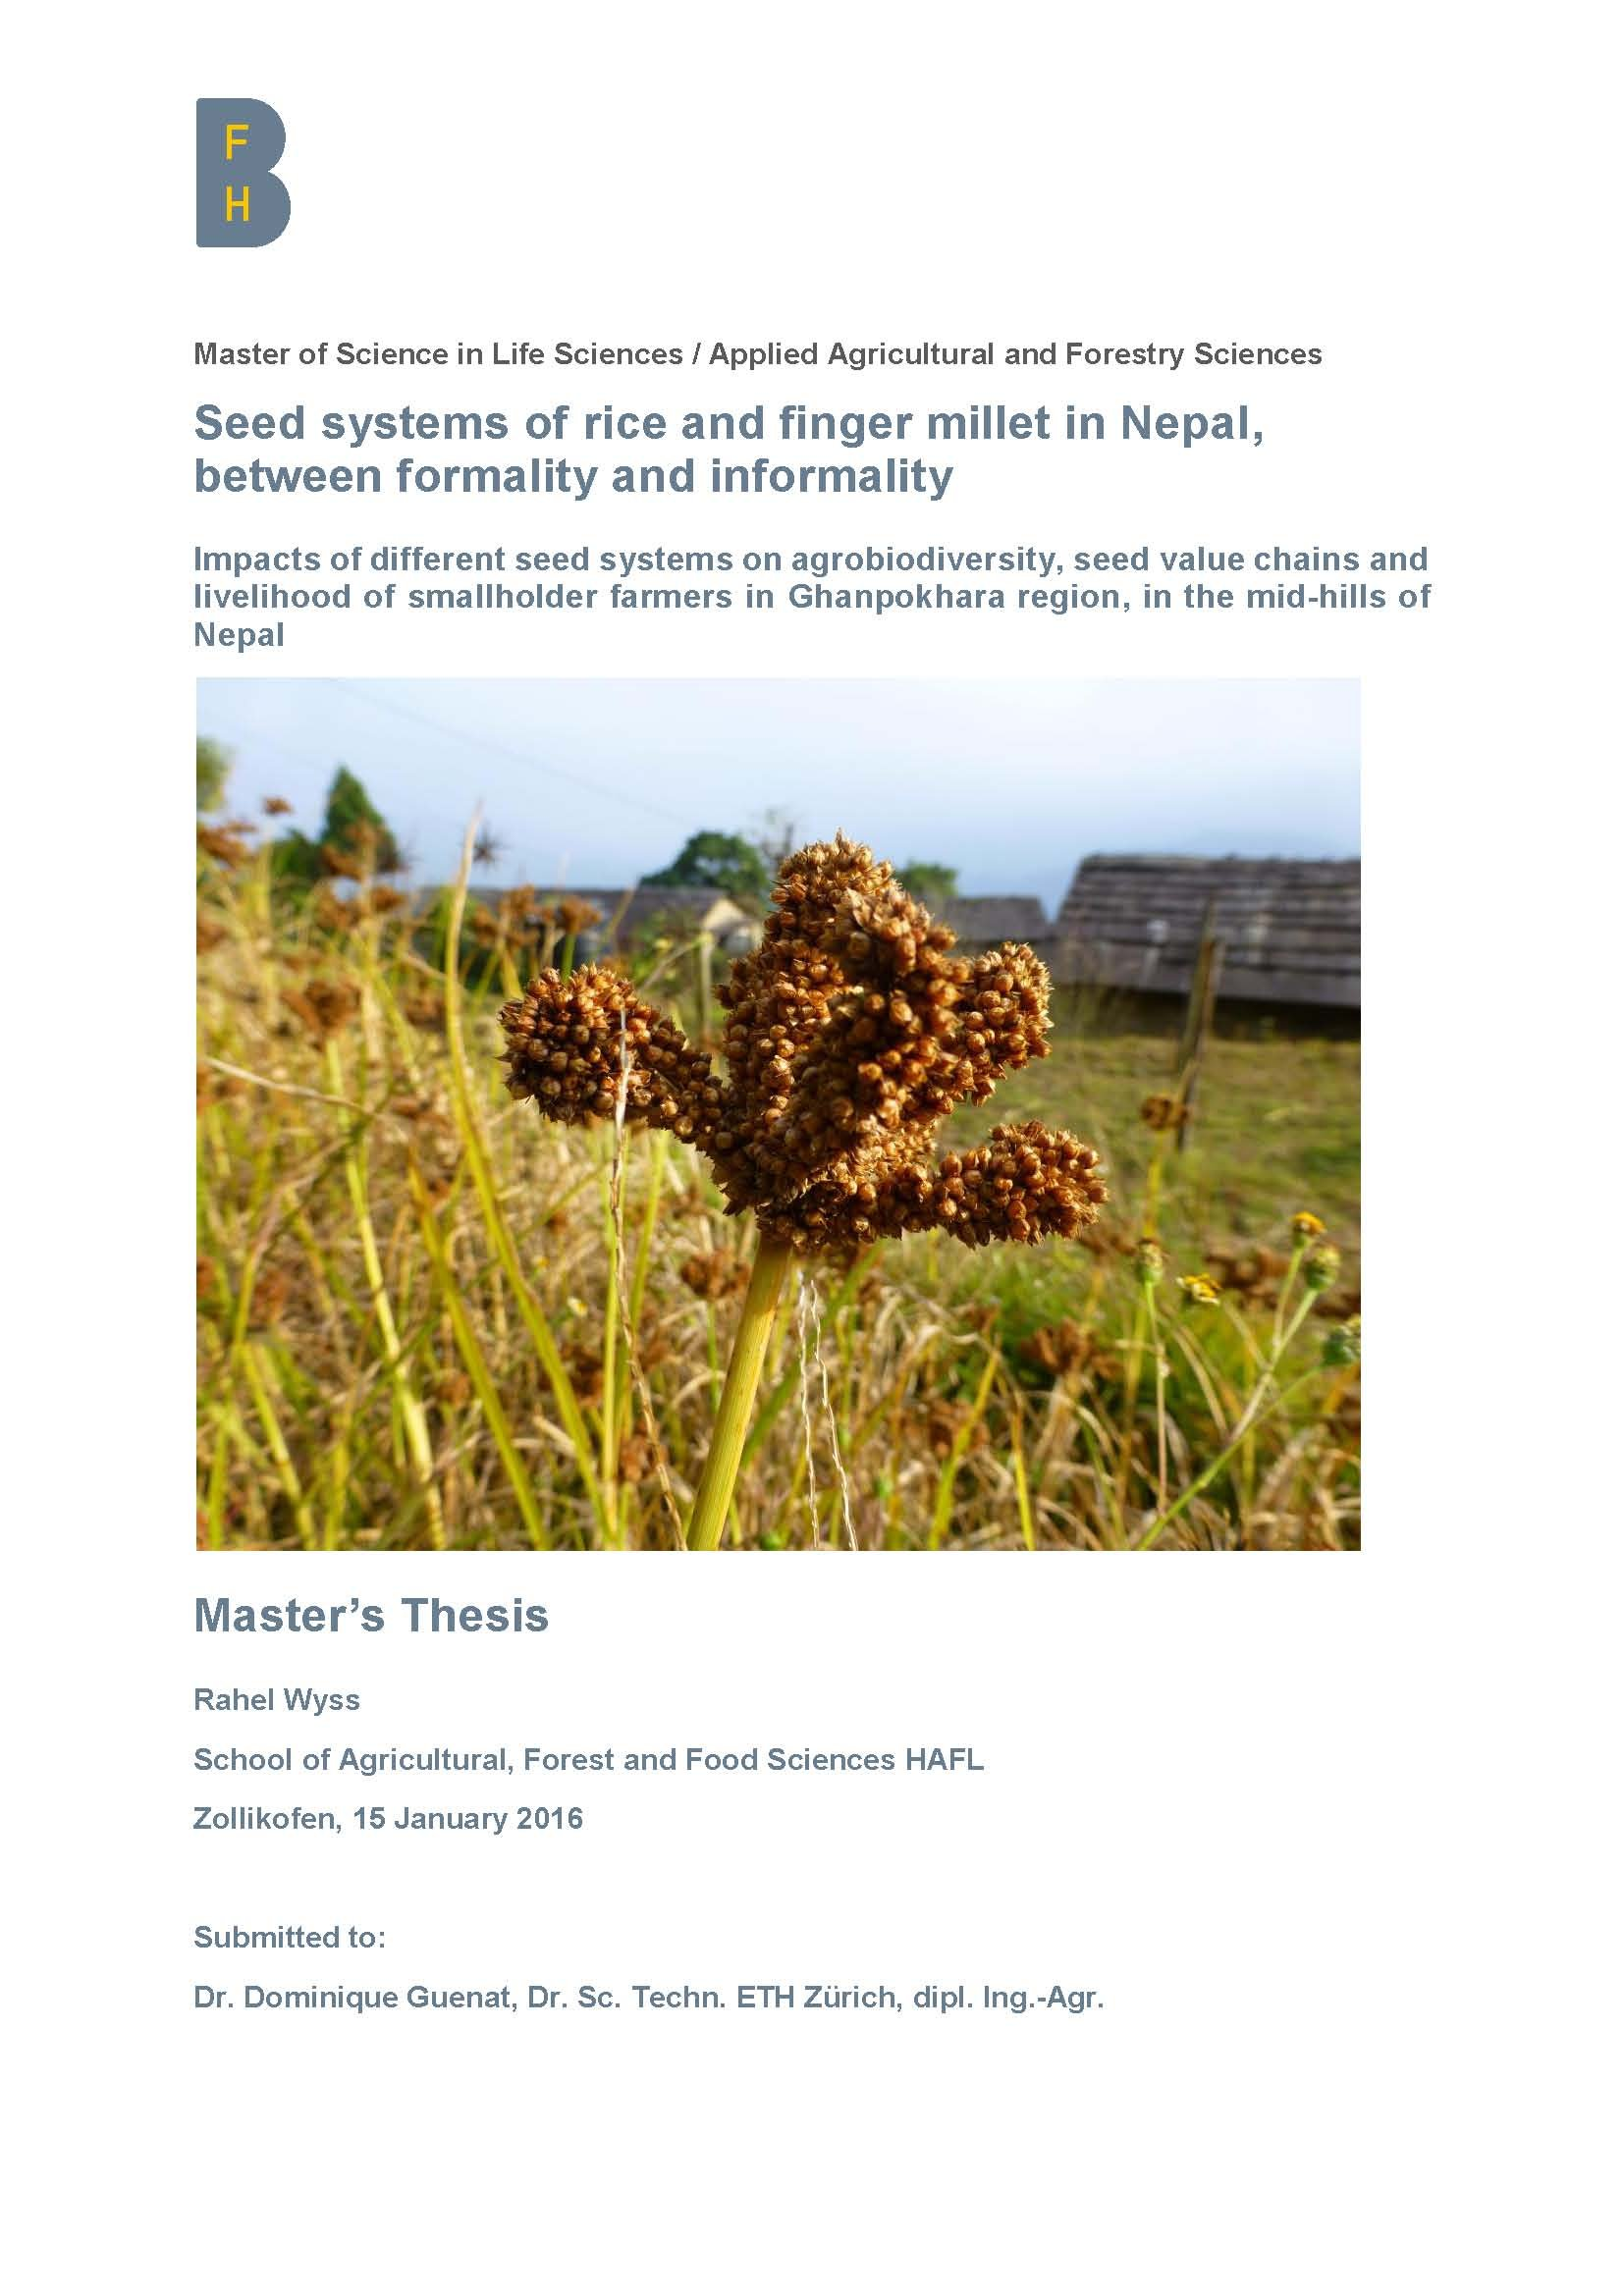 Seed systems of rice and finger millet in Nepal, between